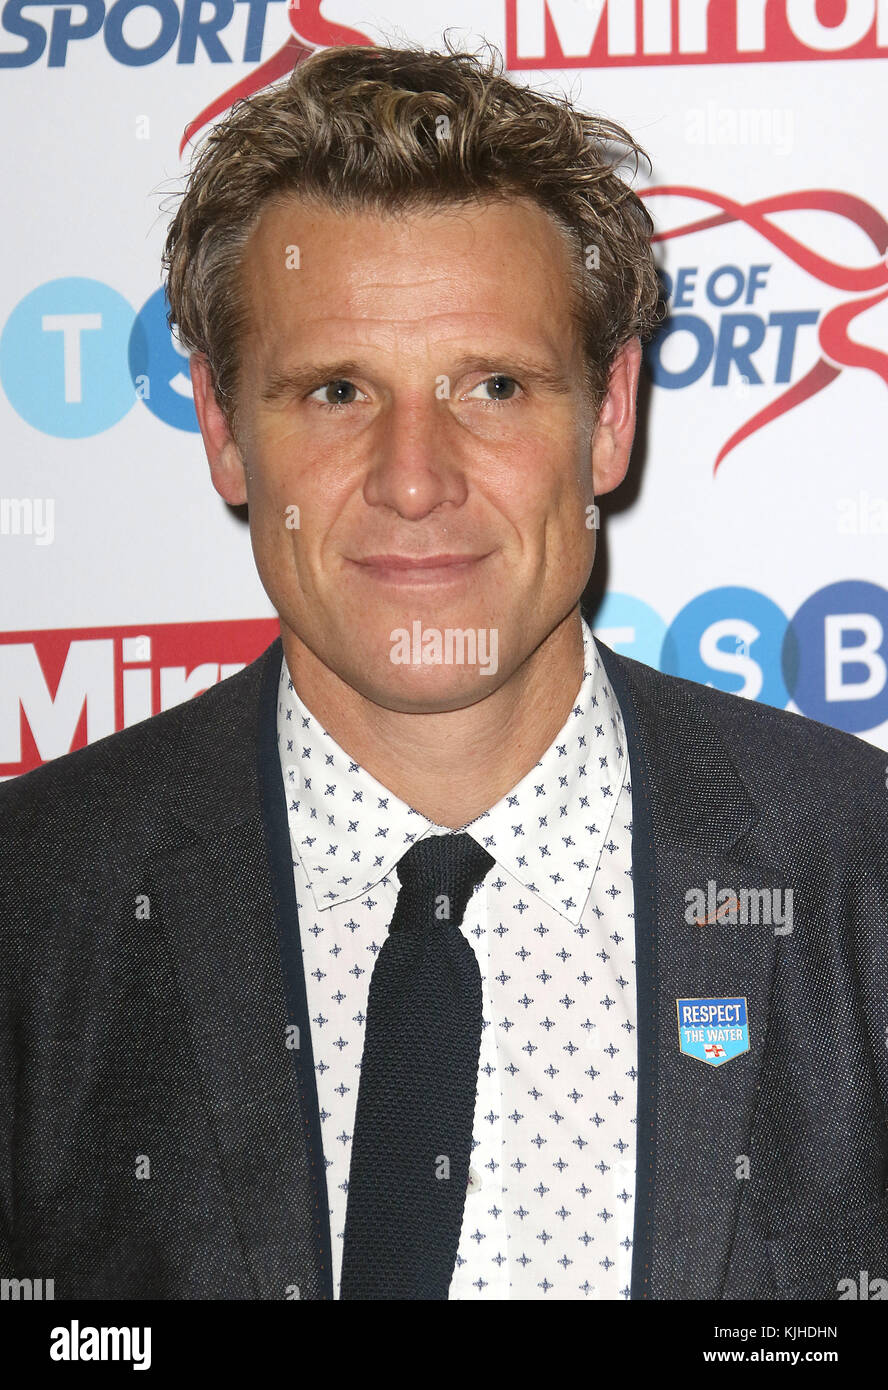 Nov 22, 2017 - James Cracknell attending Pride of Sport Awards 2017, Grosvenor House Hotel in London, England, UK - Stock Image